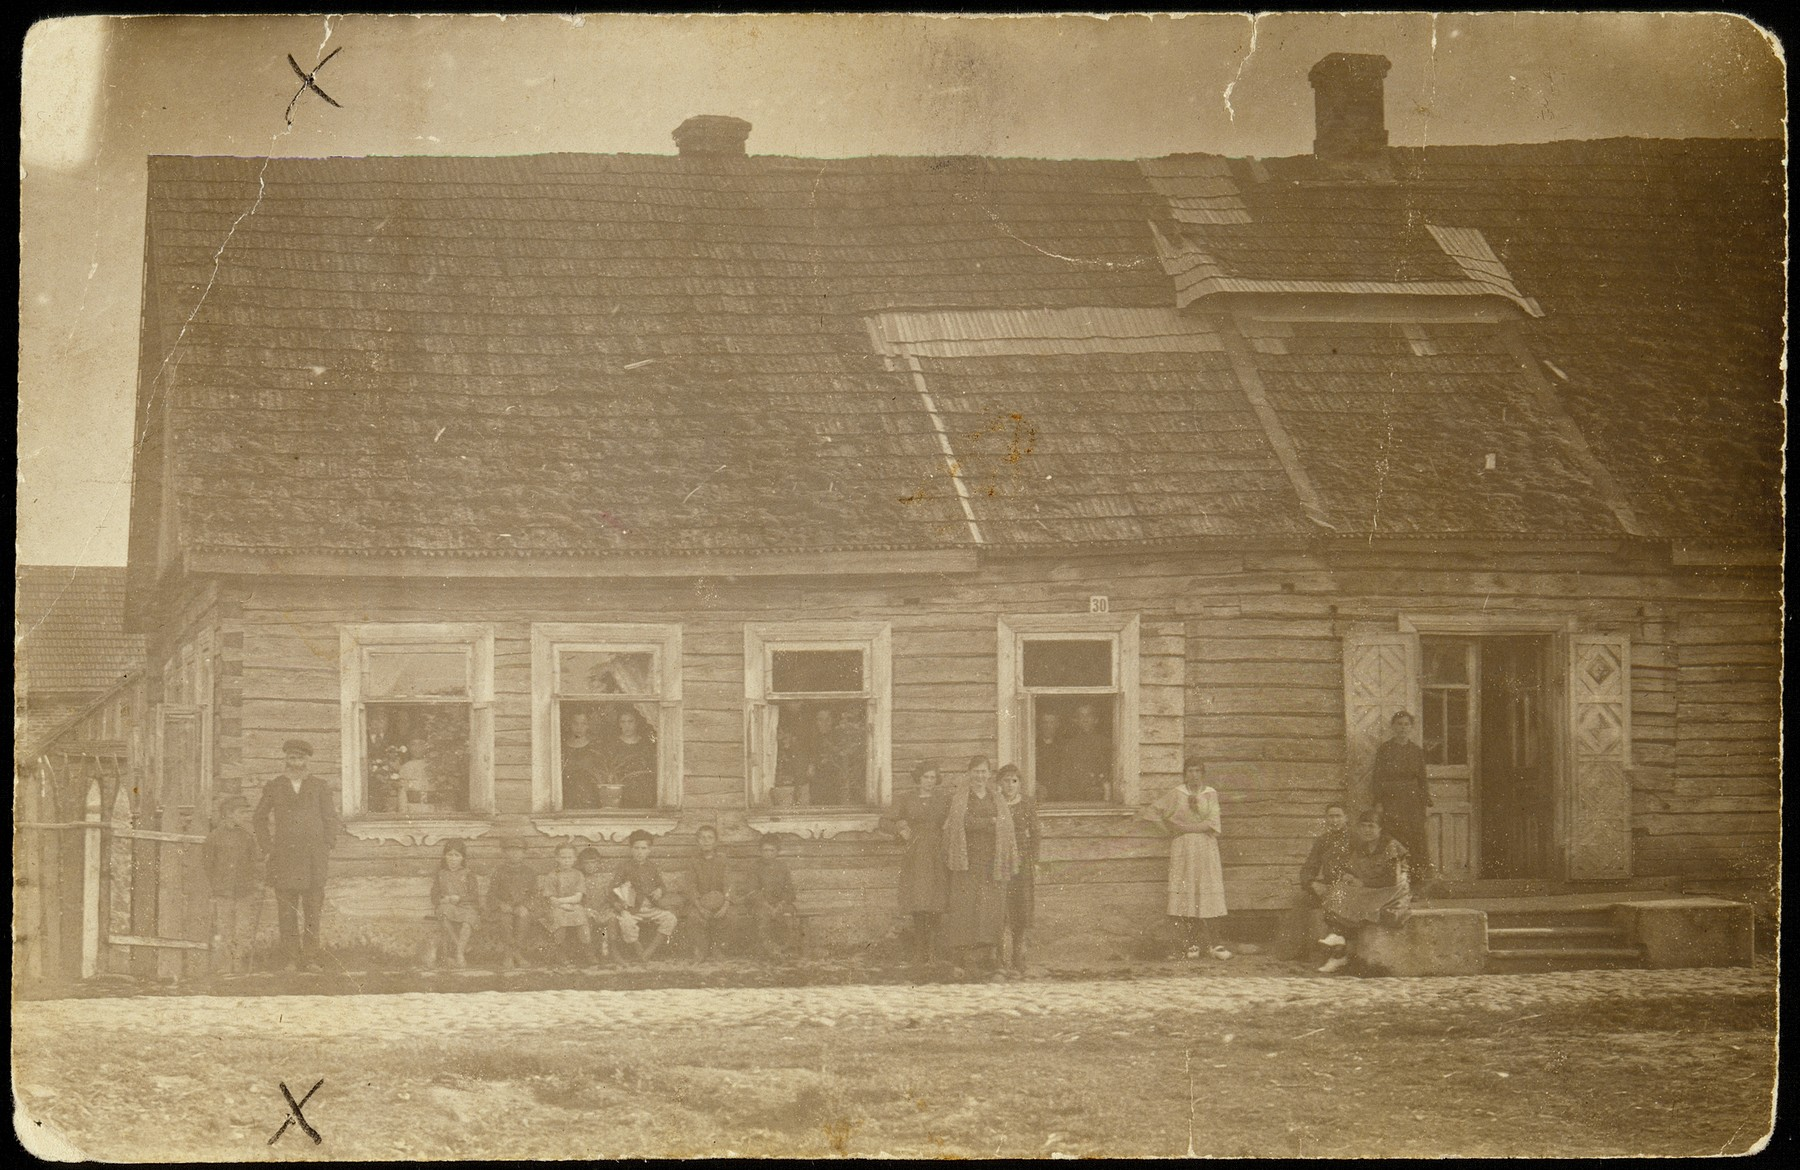 Members of the Lubetski family stand outside their house.  The two squares on the roof are the hinged rooftops that were opened for the holiday of Sukkot.  The open space was covered with fresh branches (skhakh), and the room beneath became the sukkah.